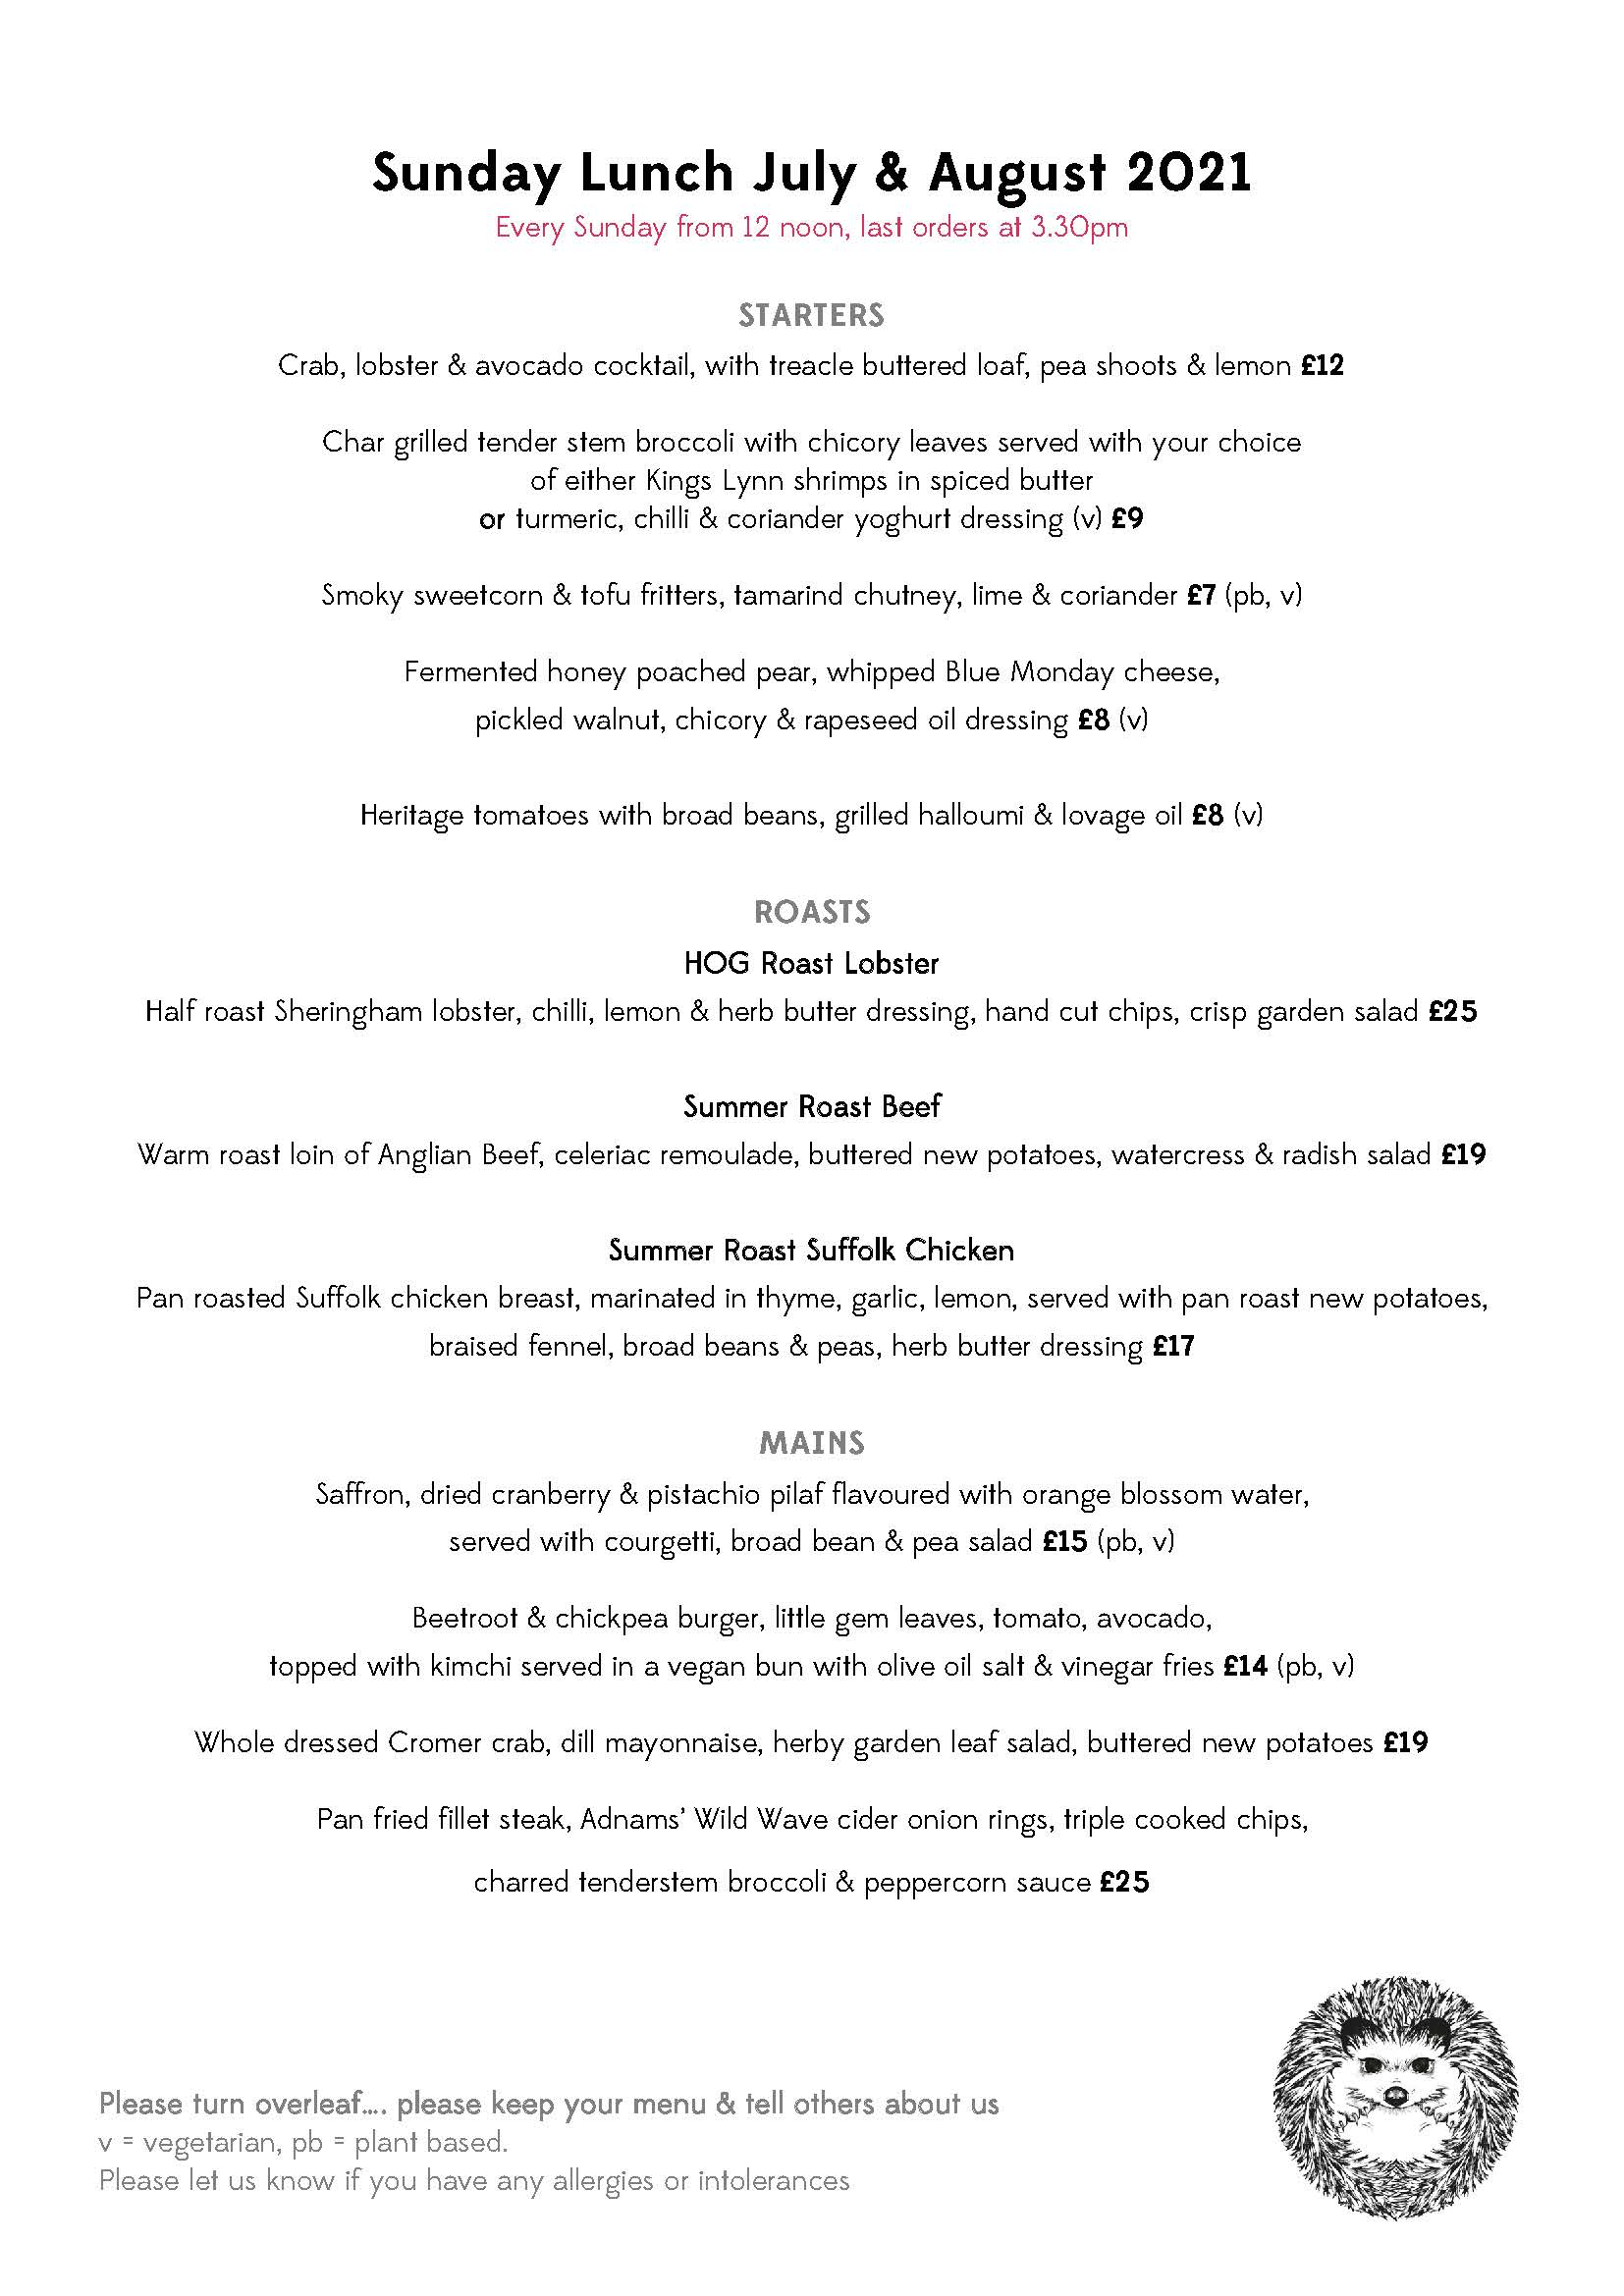 Sunday Lunch Menu July August 2021_Page_1